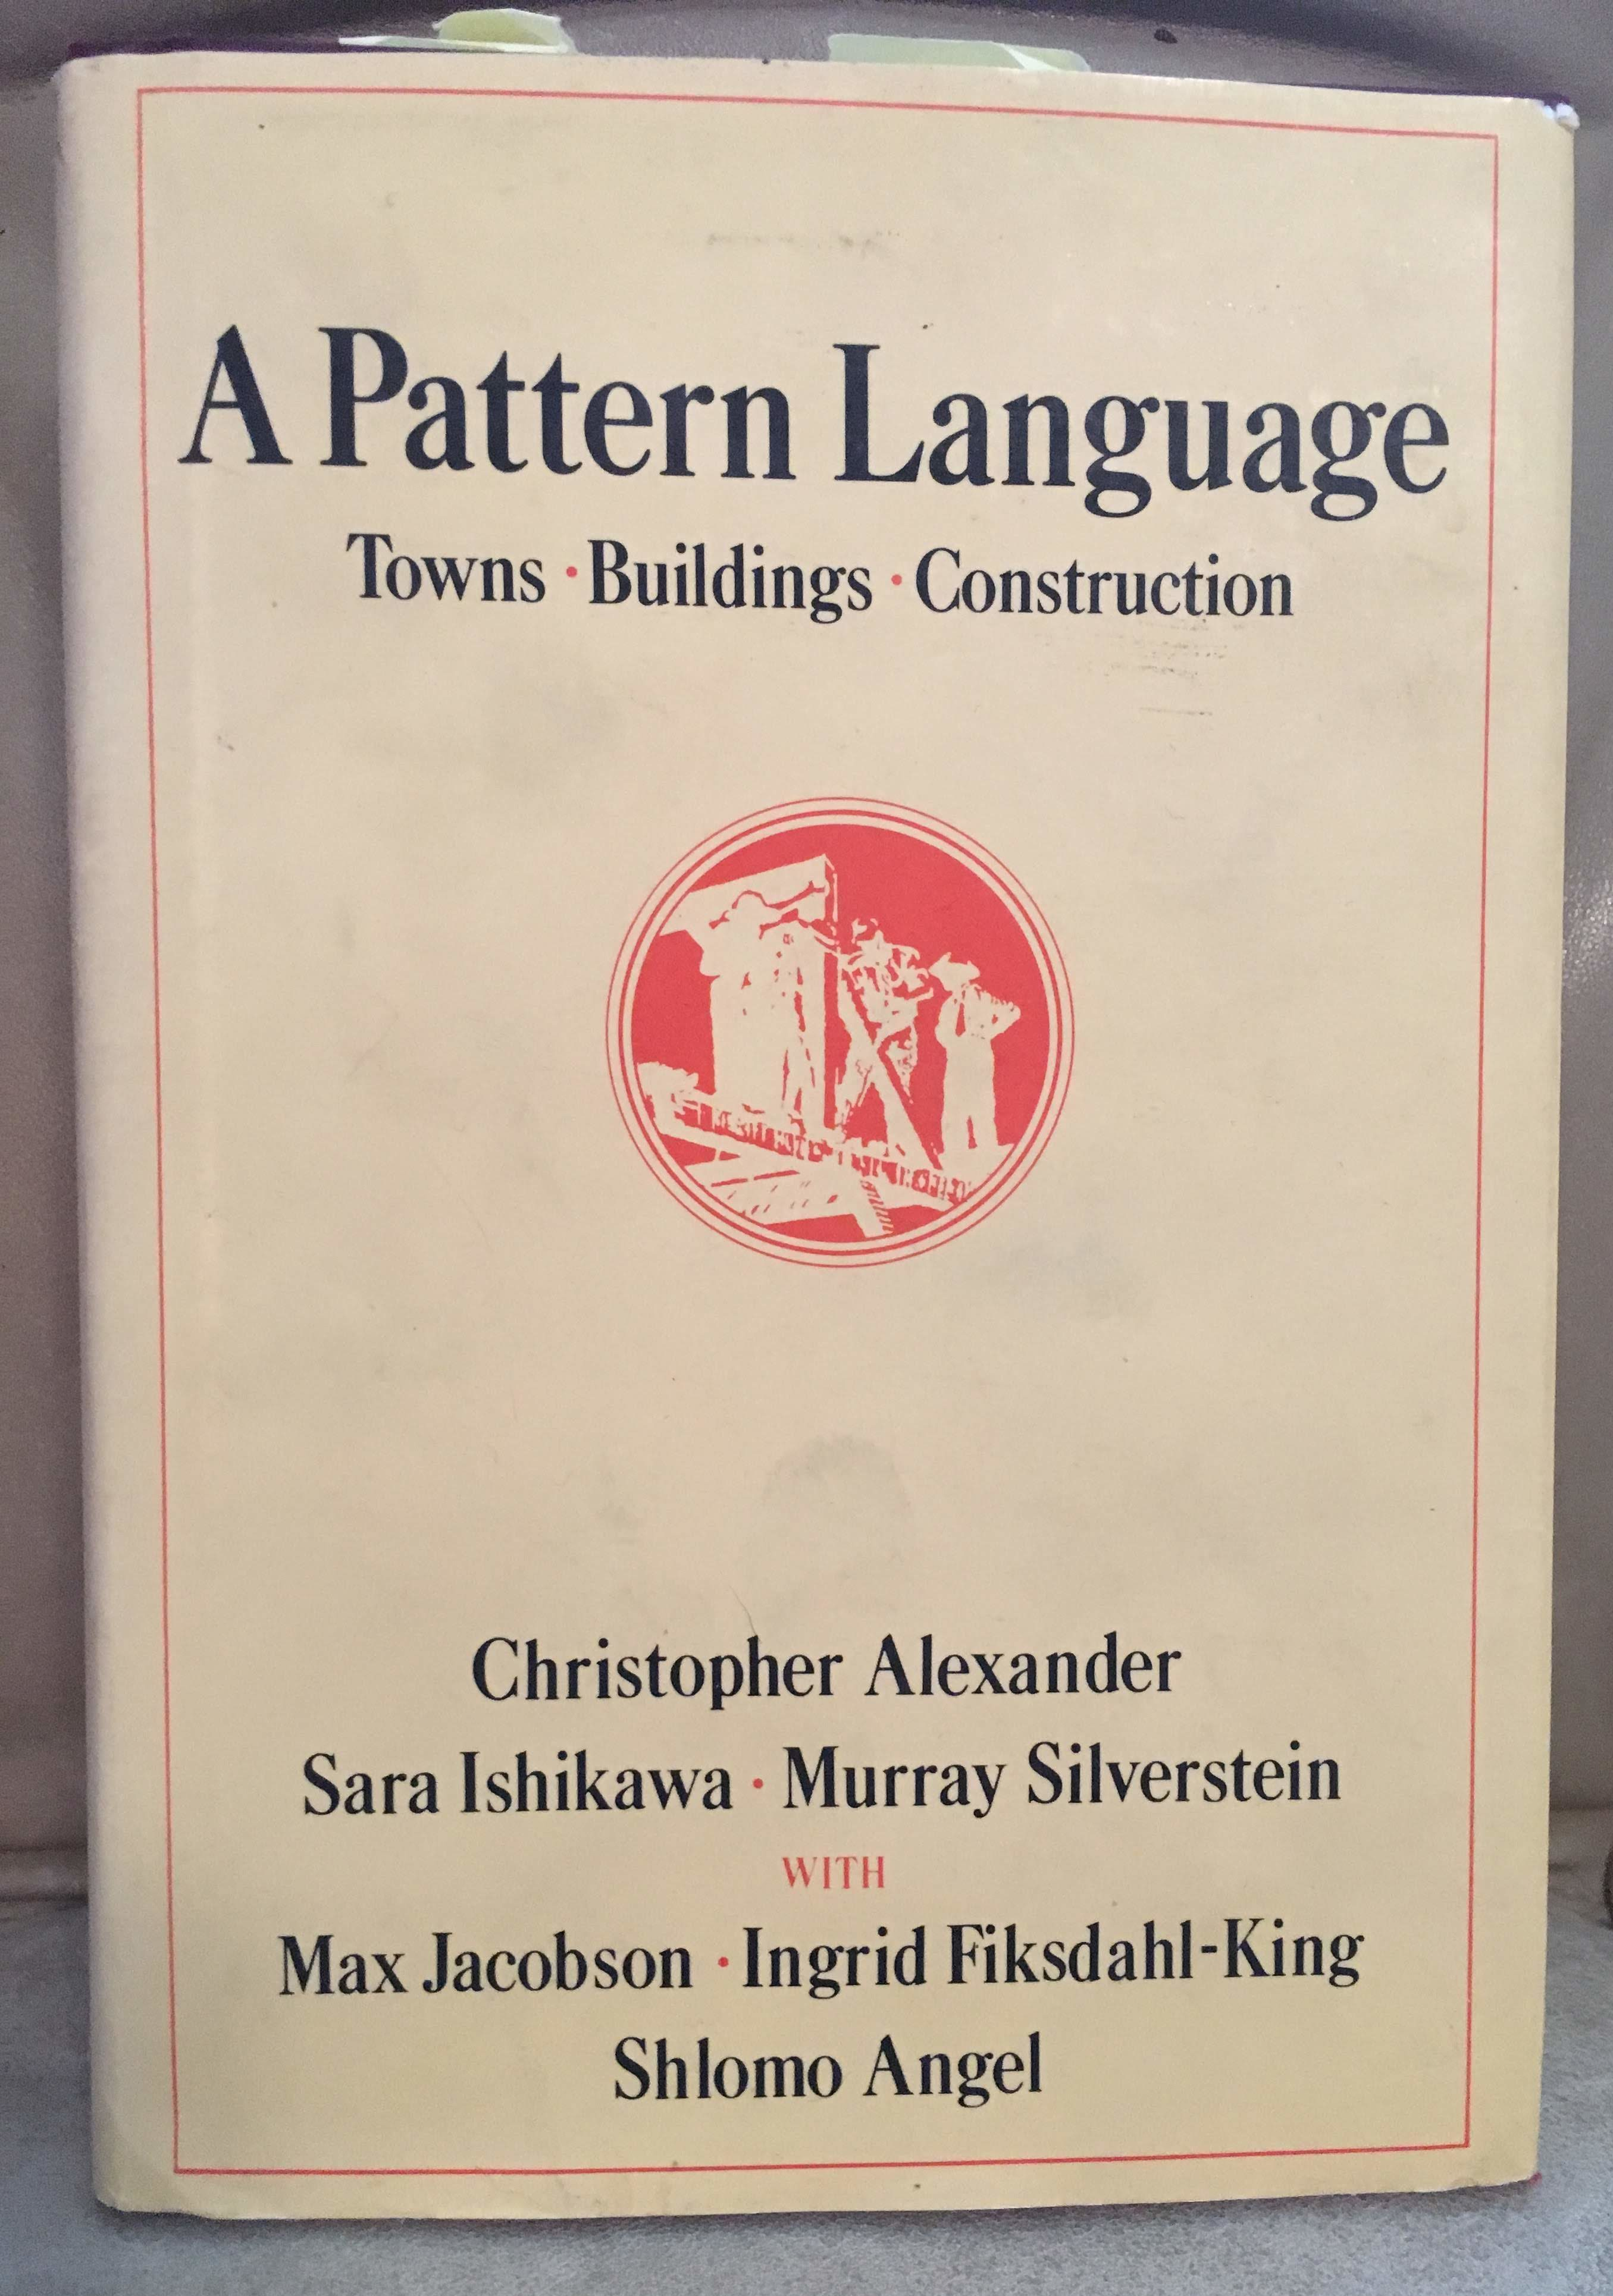 A Pattern Language Christopher Alexander Sharing Your Home with Children Getting Organized The Best Unschooling Books That Aren't About Unschooling Homeschooling Portland Homeschooling Resources Carolyn Groves